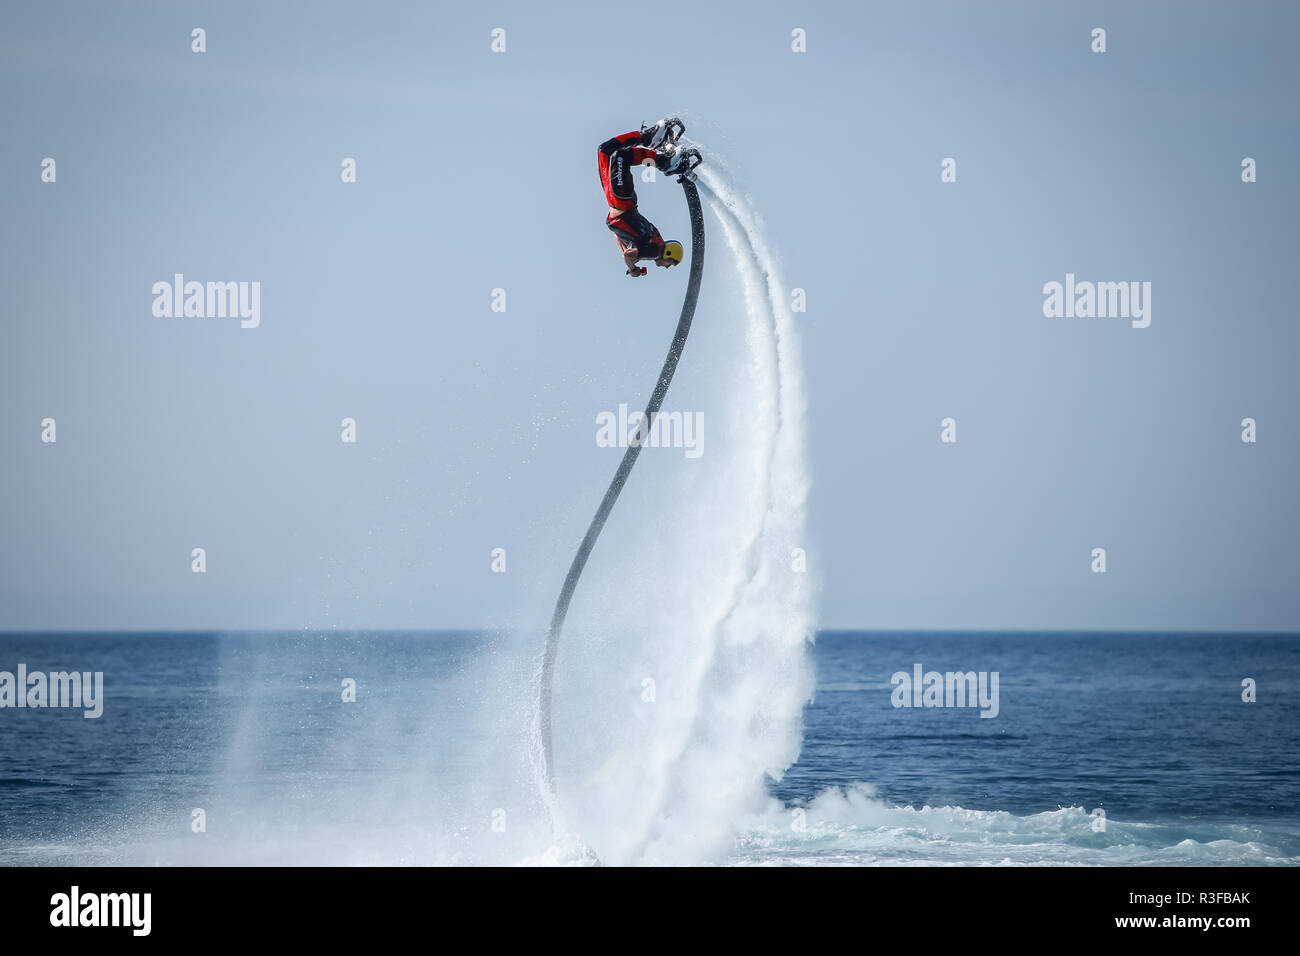 Dugi Rat, Croatia - October 20, 2018: A man is doing acrobatics with flyboard attached to jet ski close to the shore in Dugi Rat, Croatia. Stock Photo